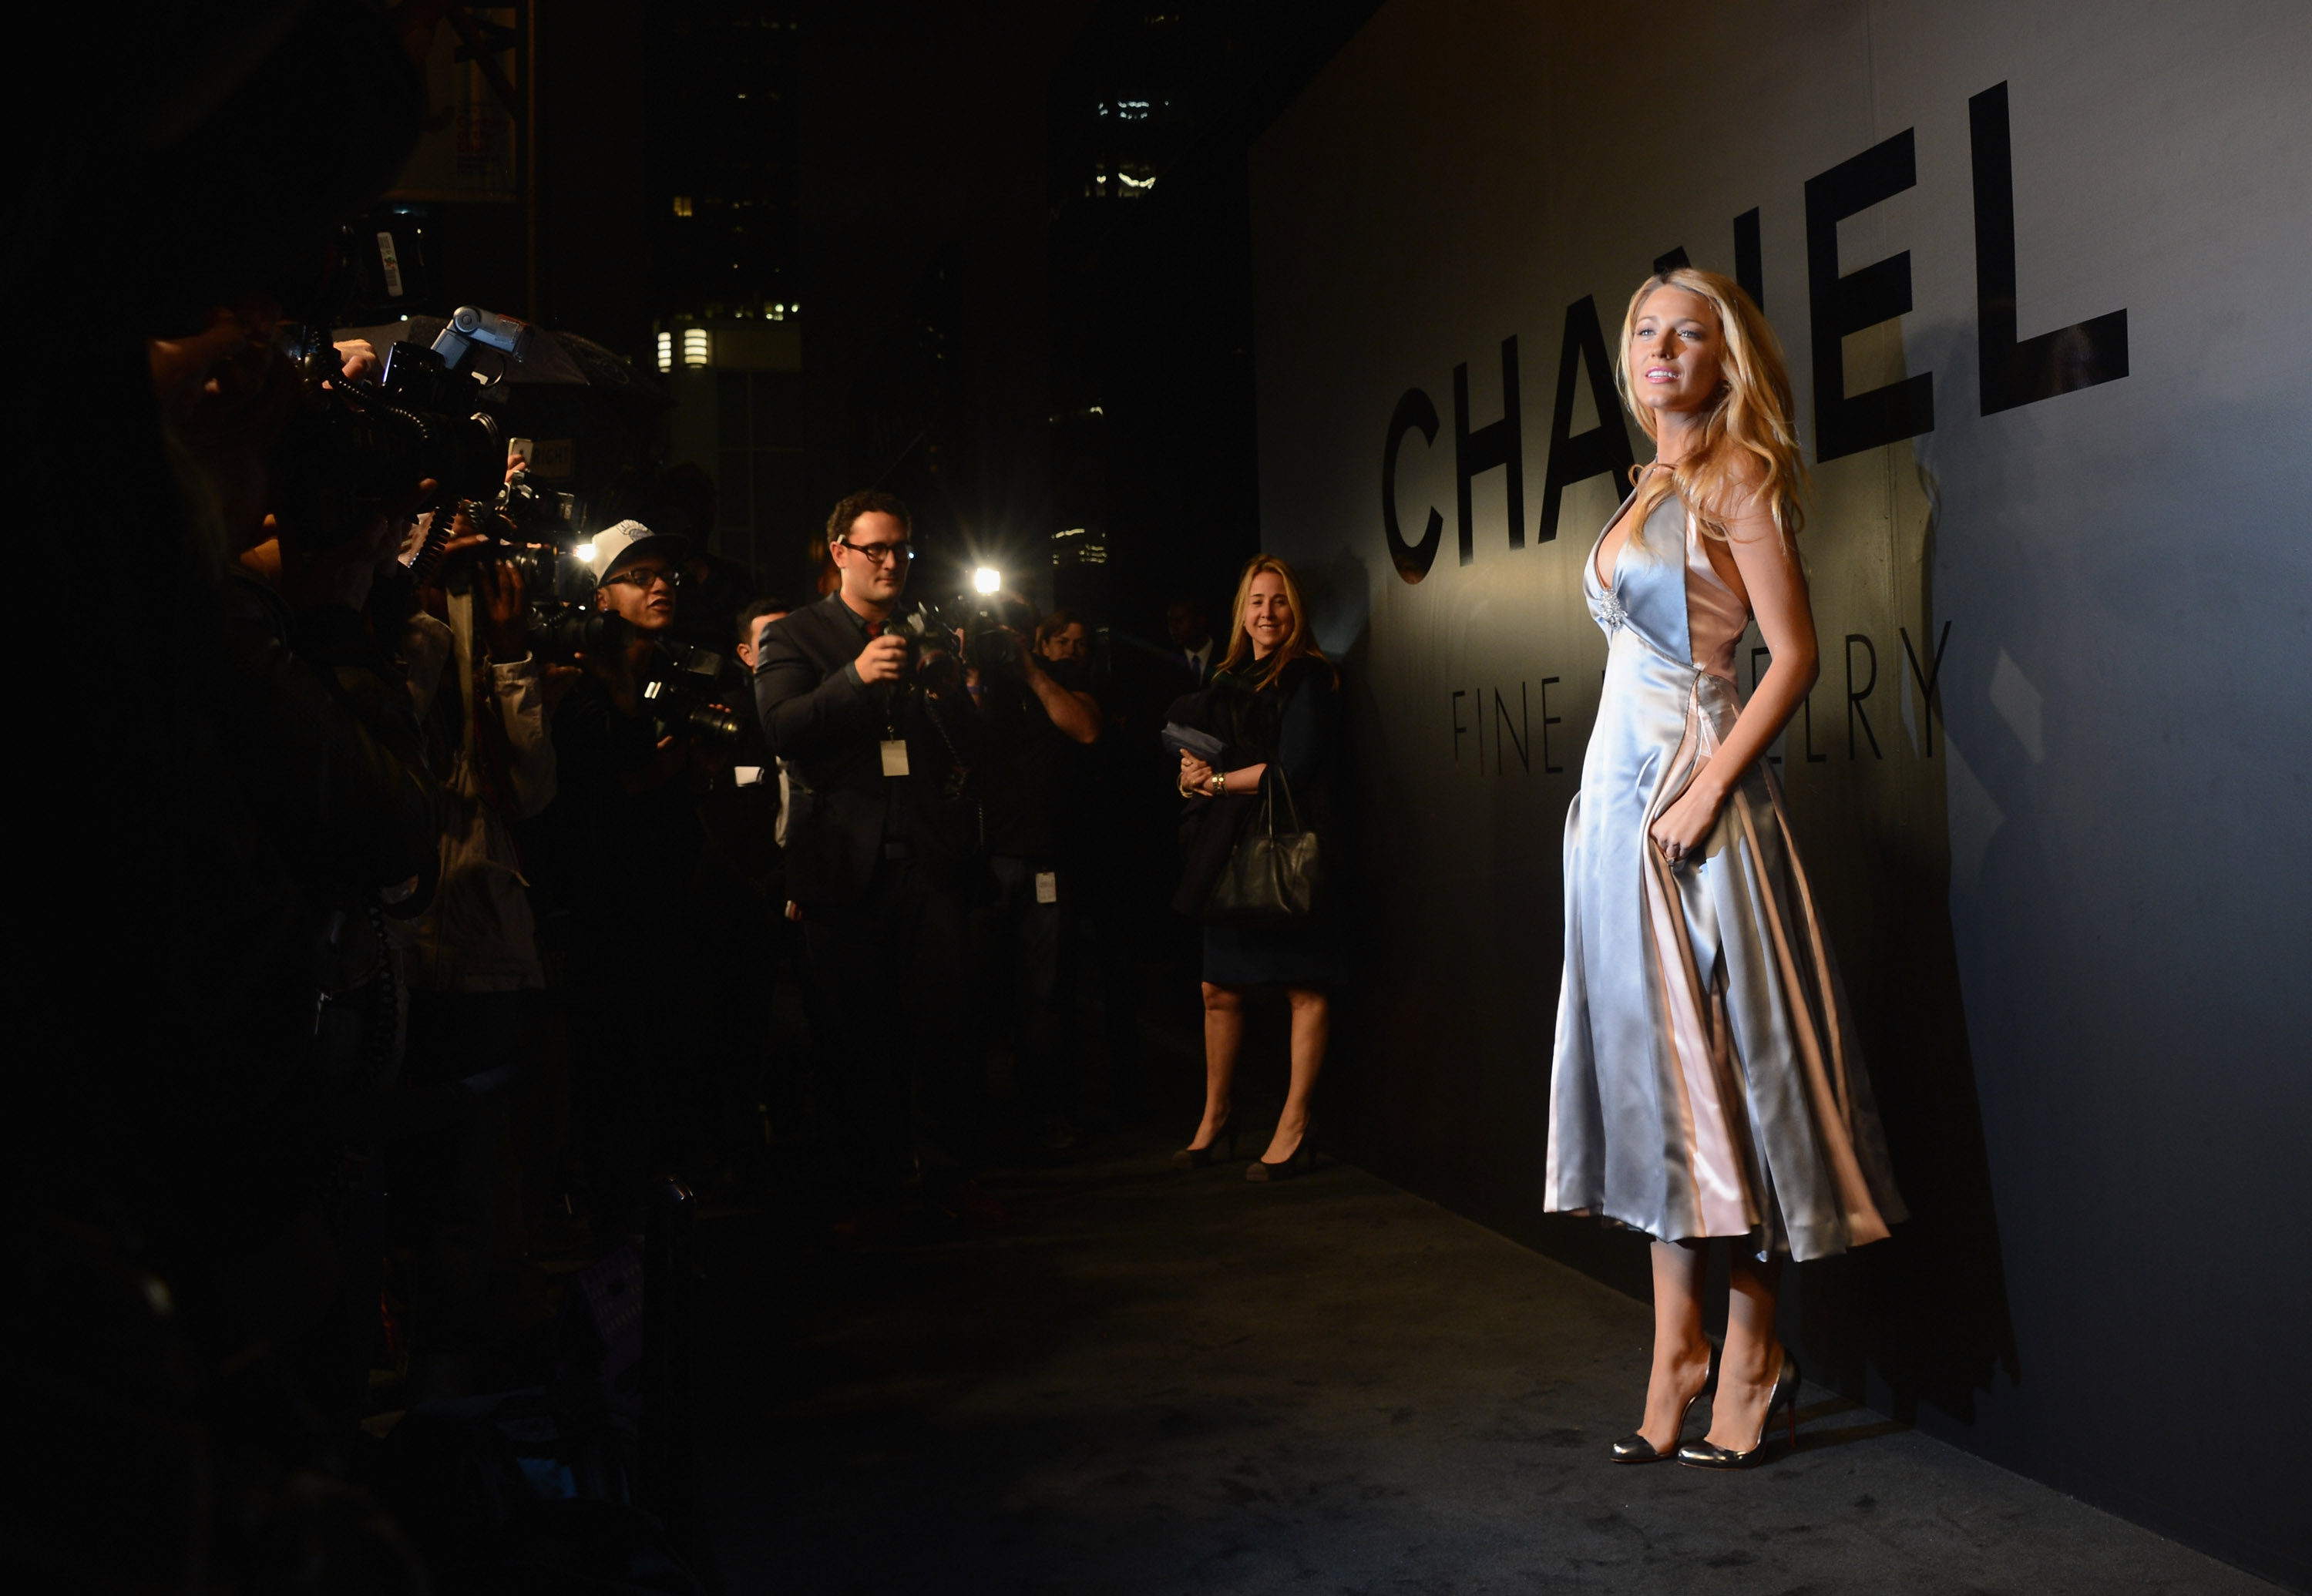 Blake Lively Sparkles on the Red Carpet